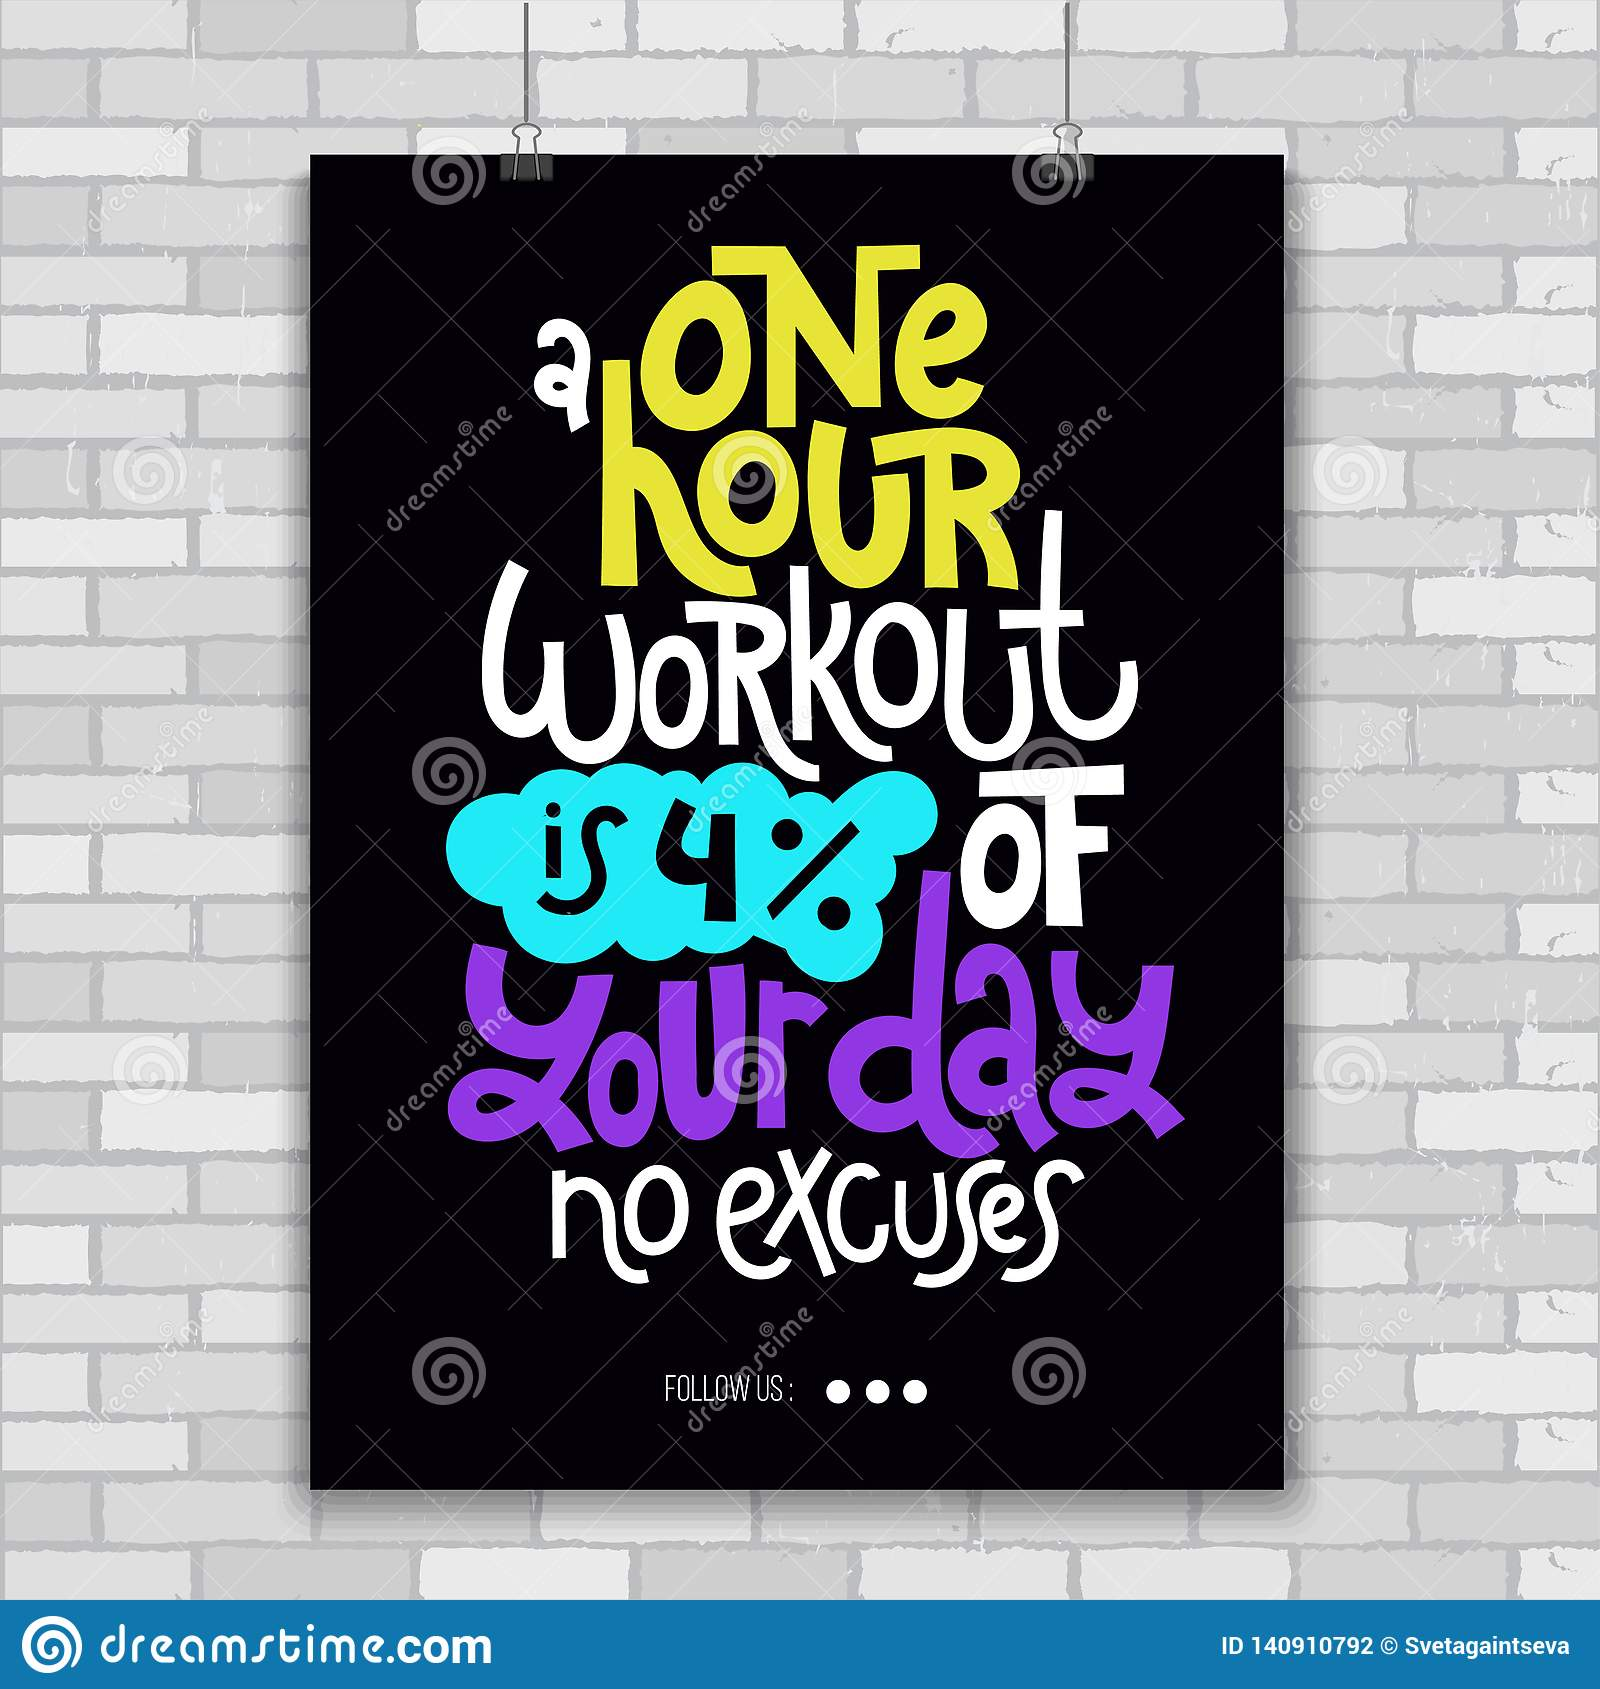 Fitness Motivational Quotes Stock Vector Illustration Of Calligraphy Girl 140910792